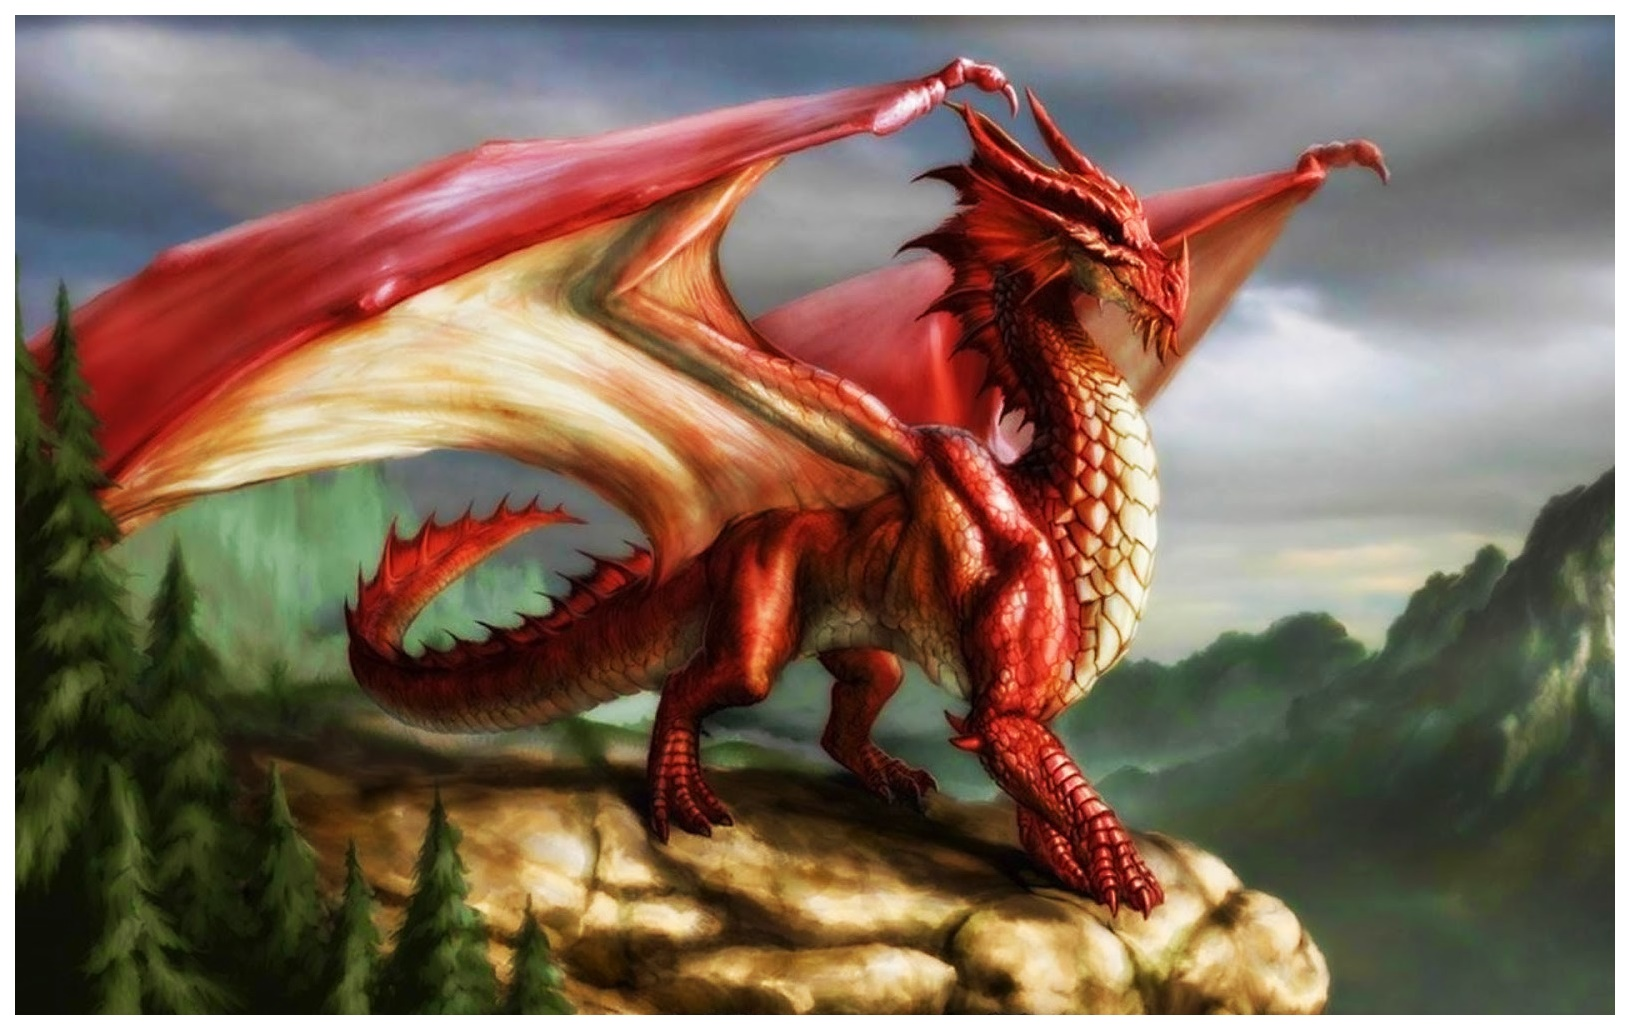 red-dragon-on-a-cliff.jpg